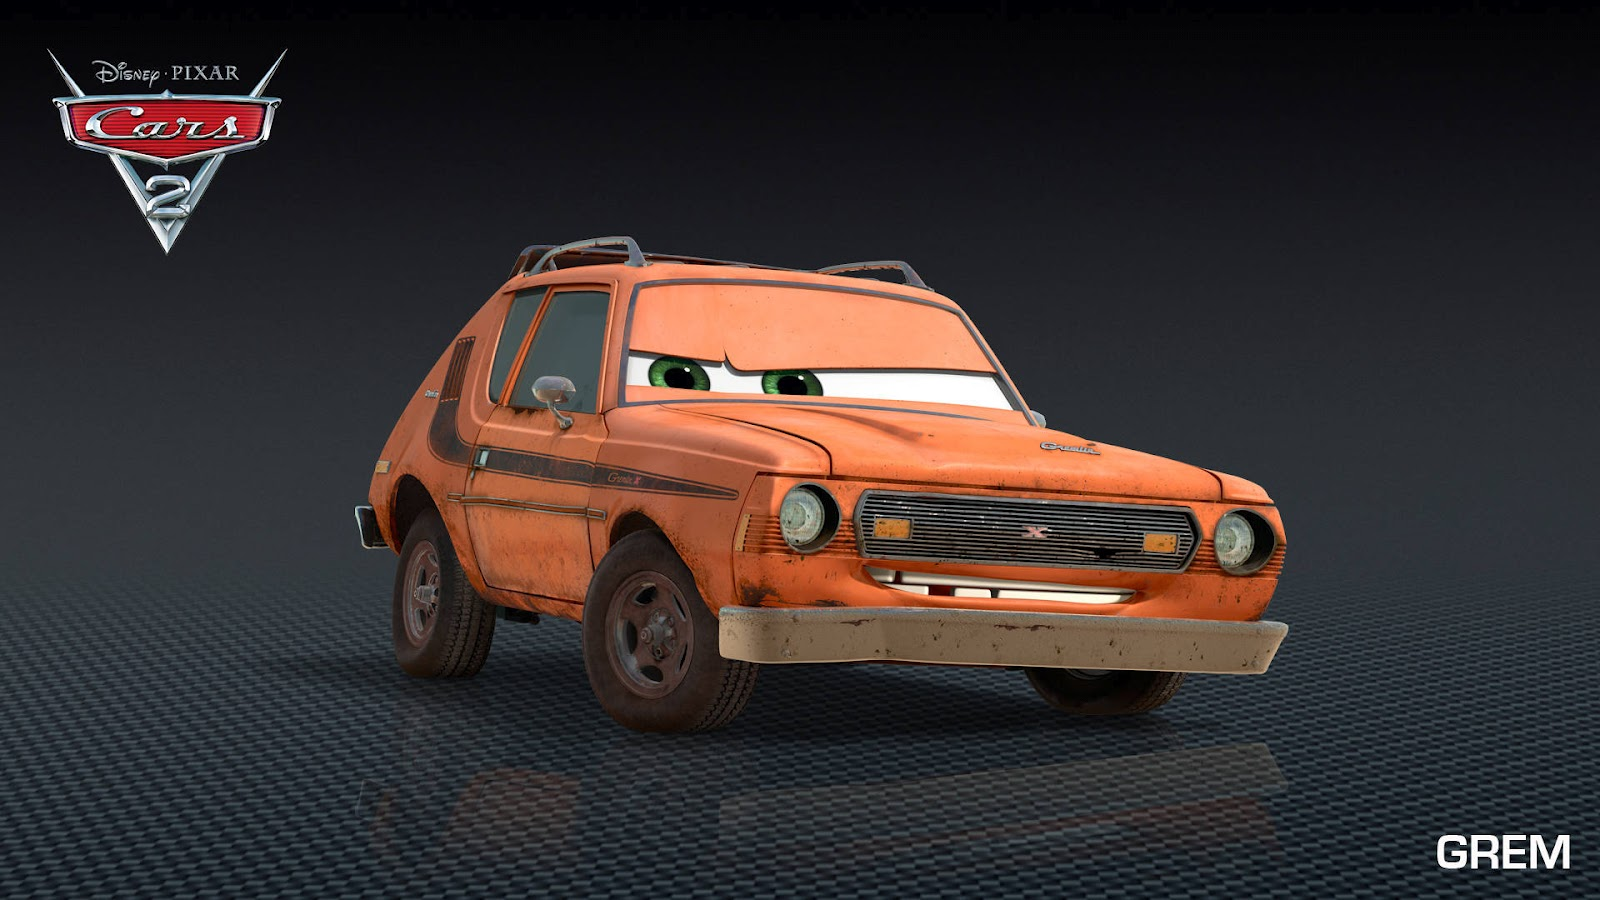 Characters In Cars: Music N' More: My Favorite Cars 2 Characters